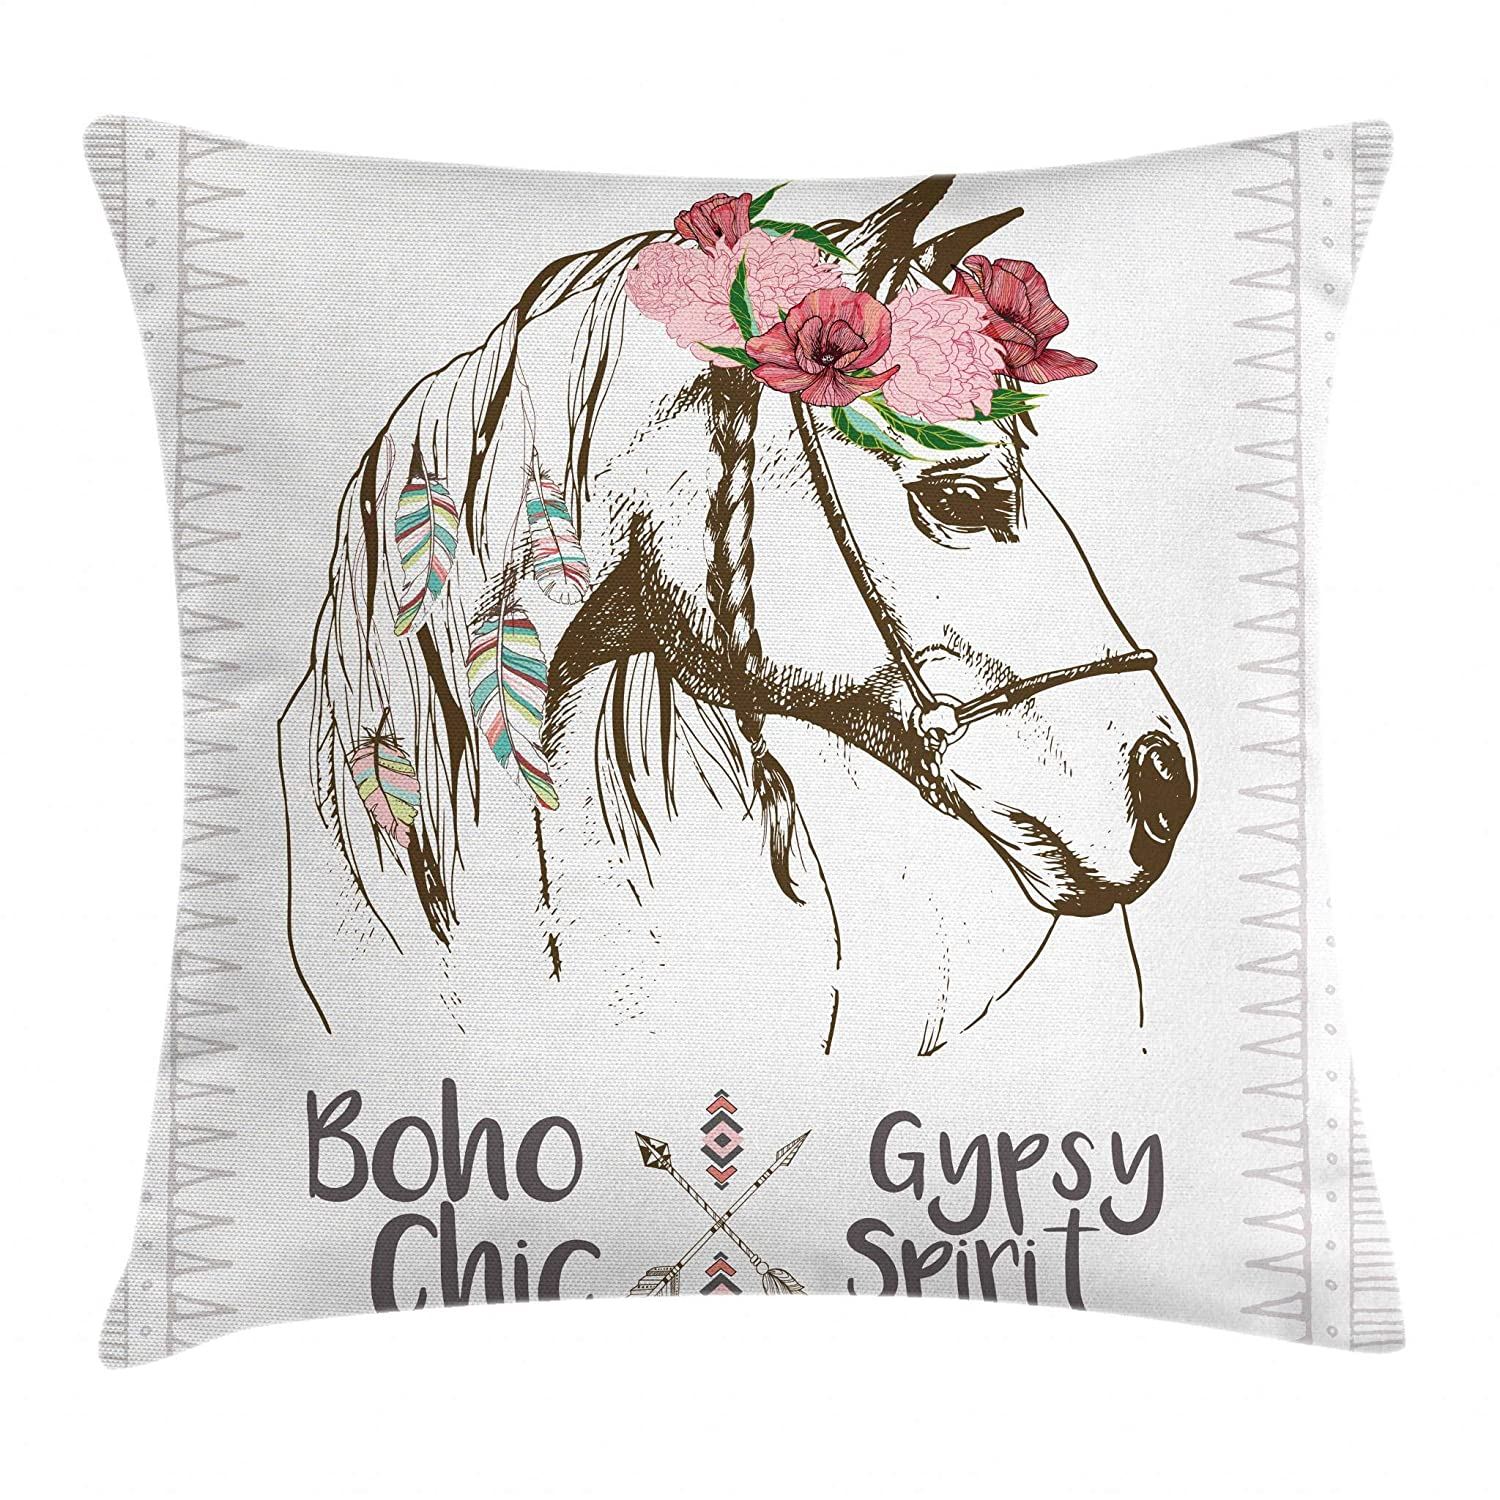 Ambesonne Animal Throw Pillow Cushion Cover, Boho Horse Head Sketch with Flowers Colorful Feathers Gypsy Spirit, Decorative Square Accent Pillow Case, 24 X 24 Inches, Army Green Pale Pink Grey